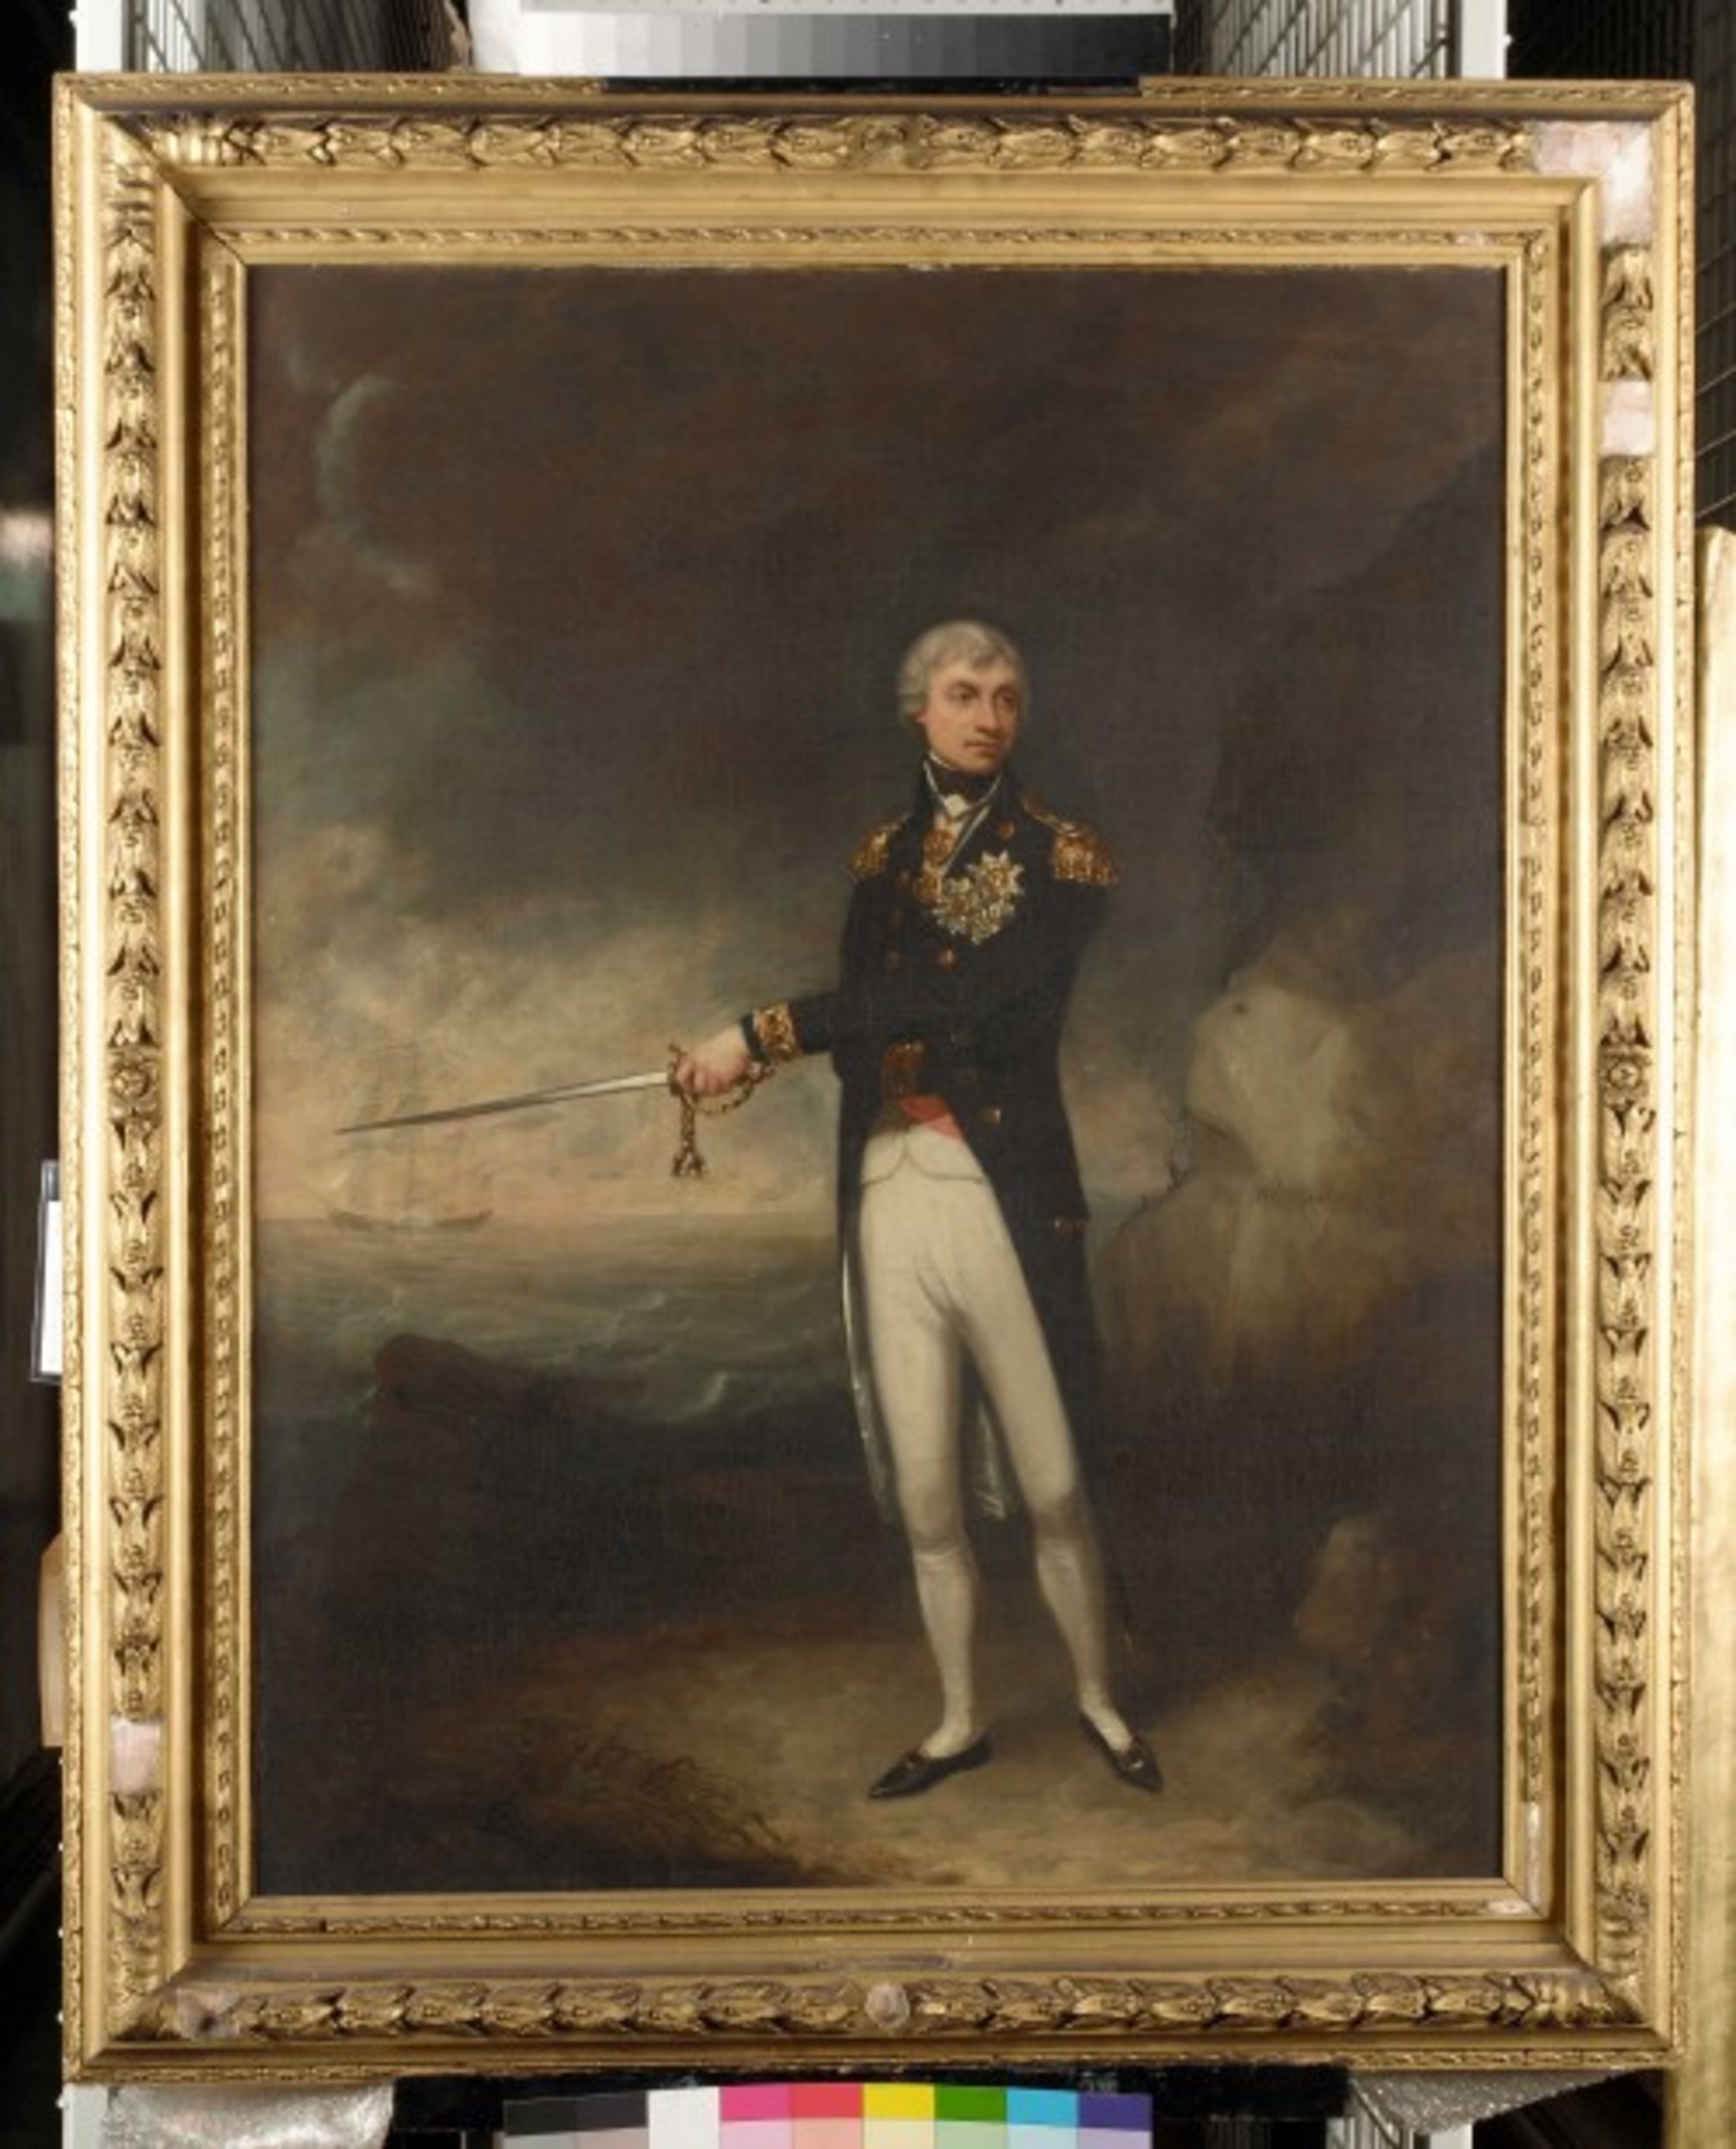 Vice-Admiral-Horatio-Nelson-1758-1805-1st-Viscount-Nelson-RMG-BHC2902.jpg